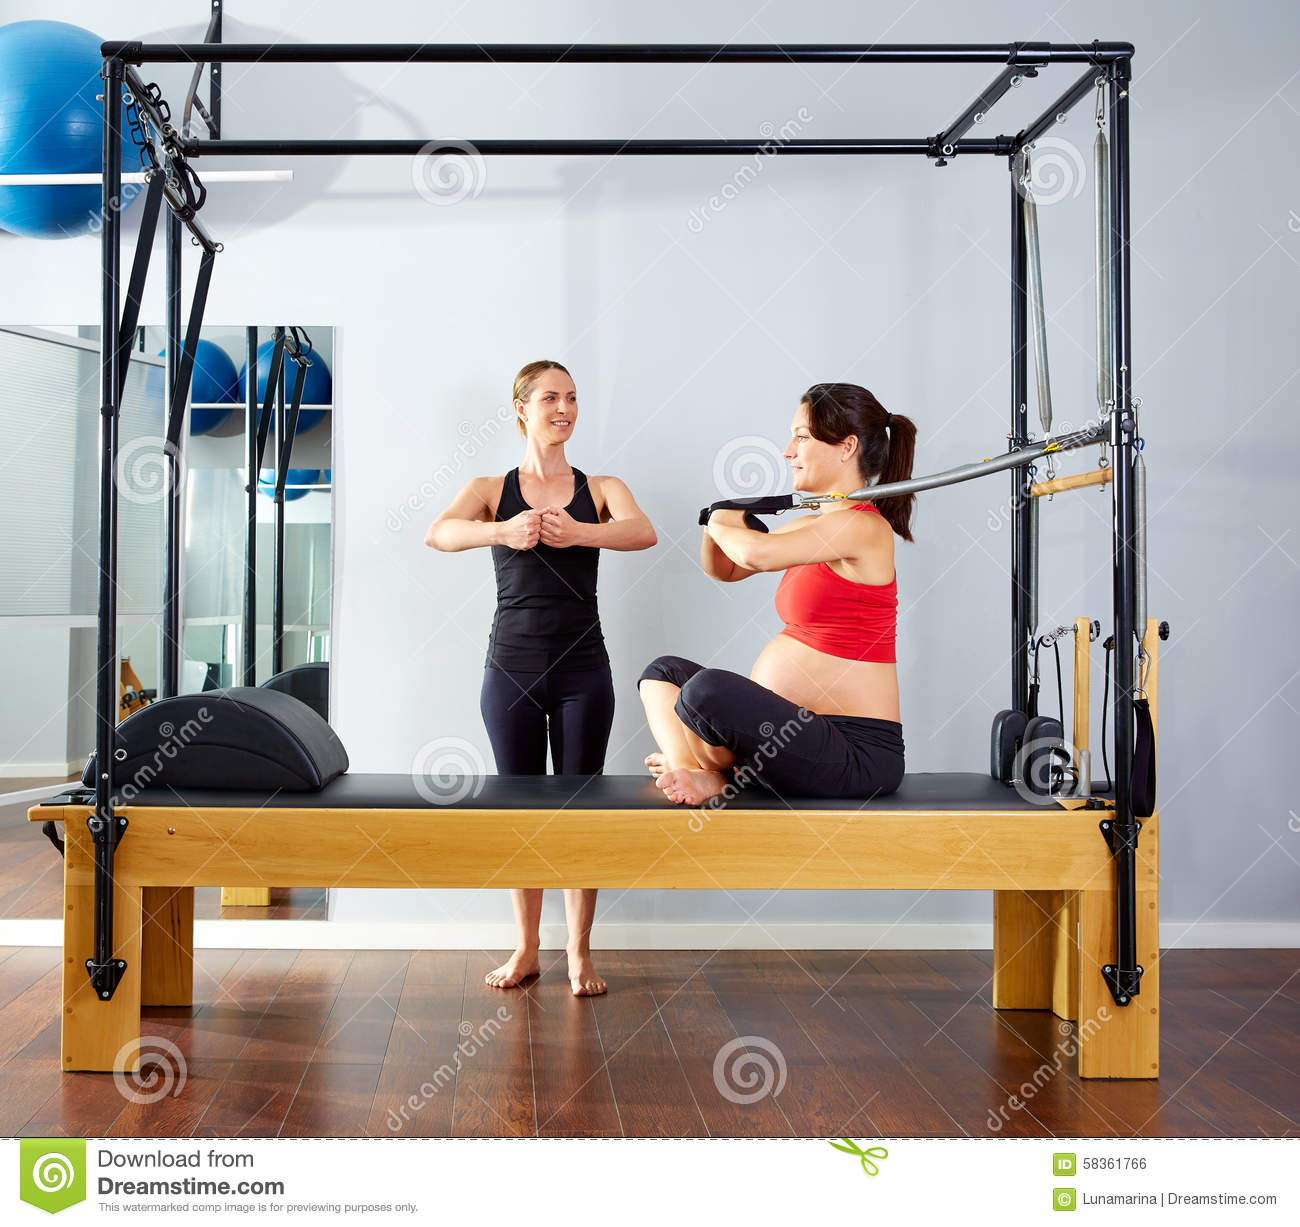 Pregnant Woman Pilates Reformer Arms Exercise Stock Photo